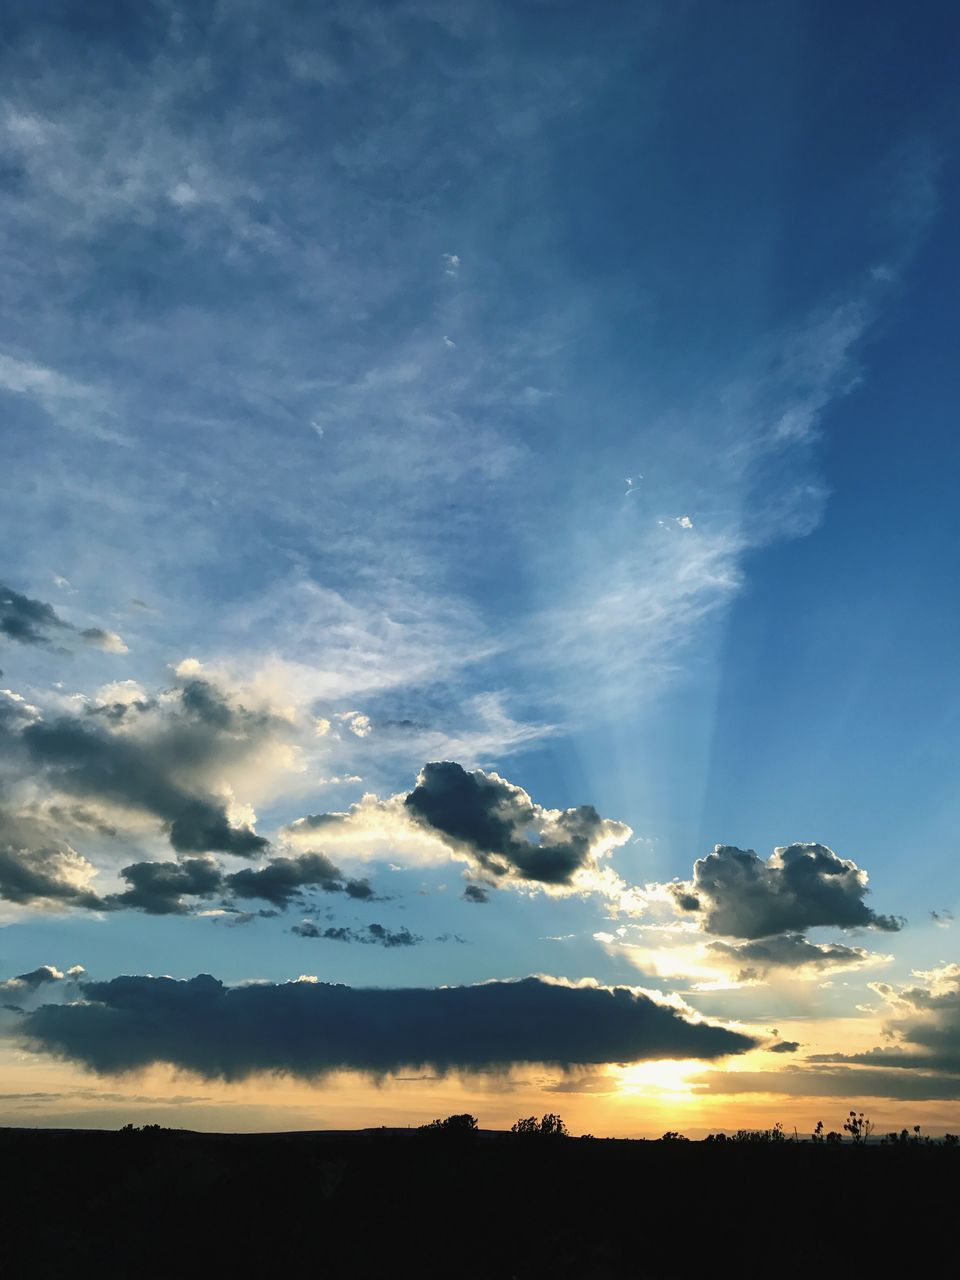 sky, beauty in nature, scenics, nature, tranquil scene, cloud - sky, sunbeam, silhouette, tranquility, no people, outdoors, idyllic, sunlight, blue, sunset, day, tree